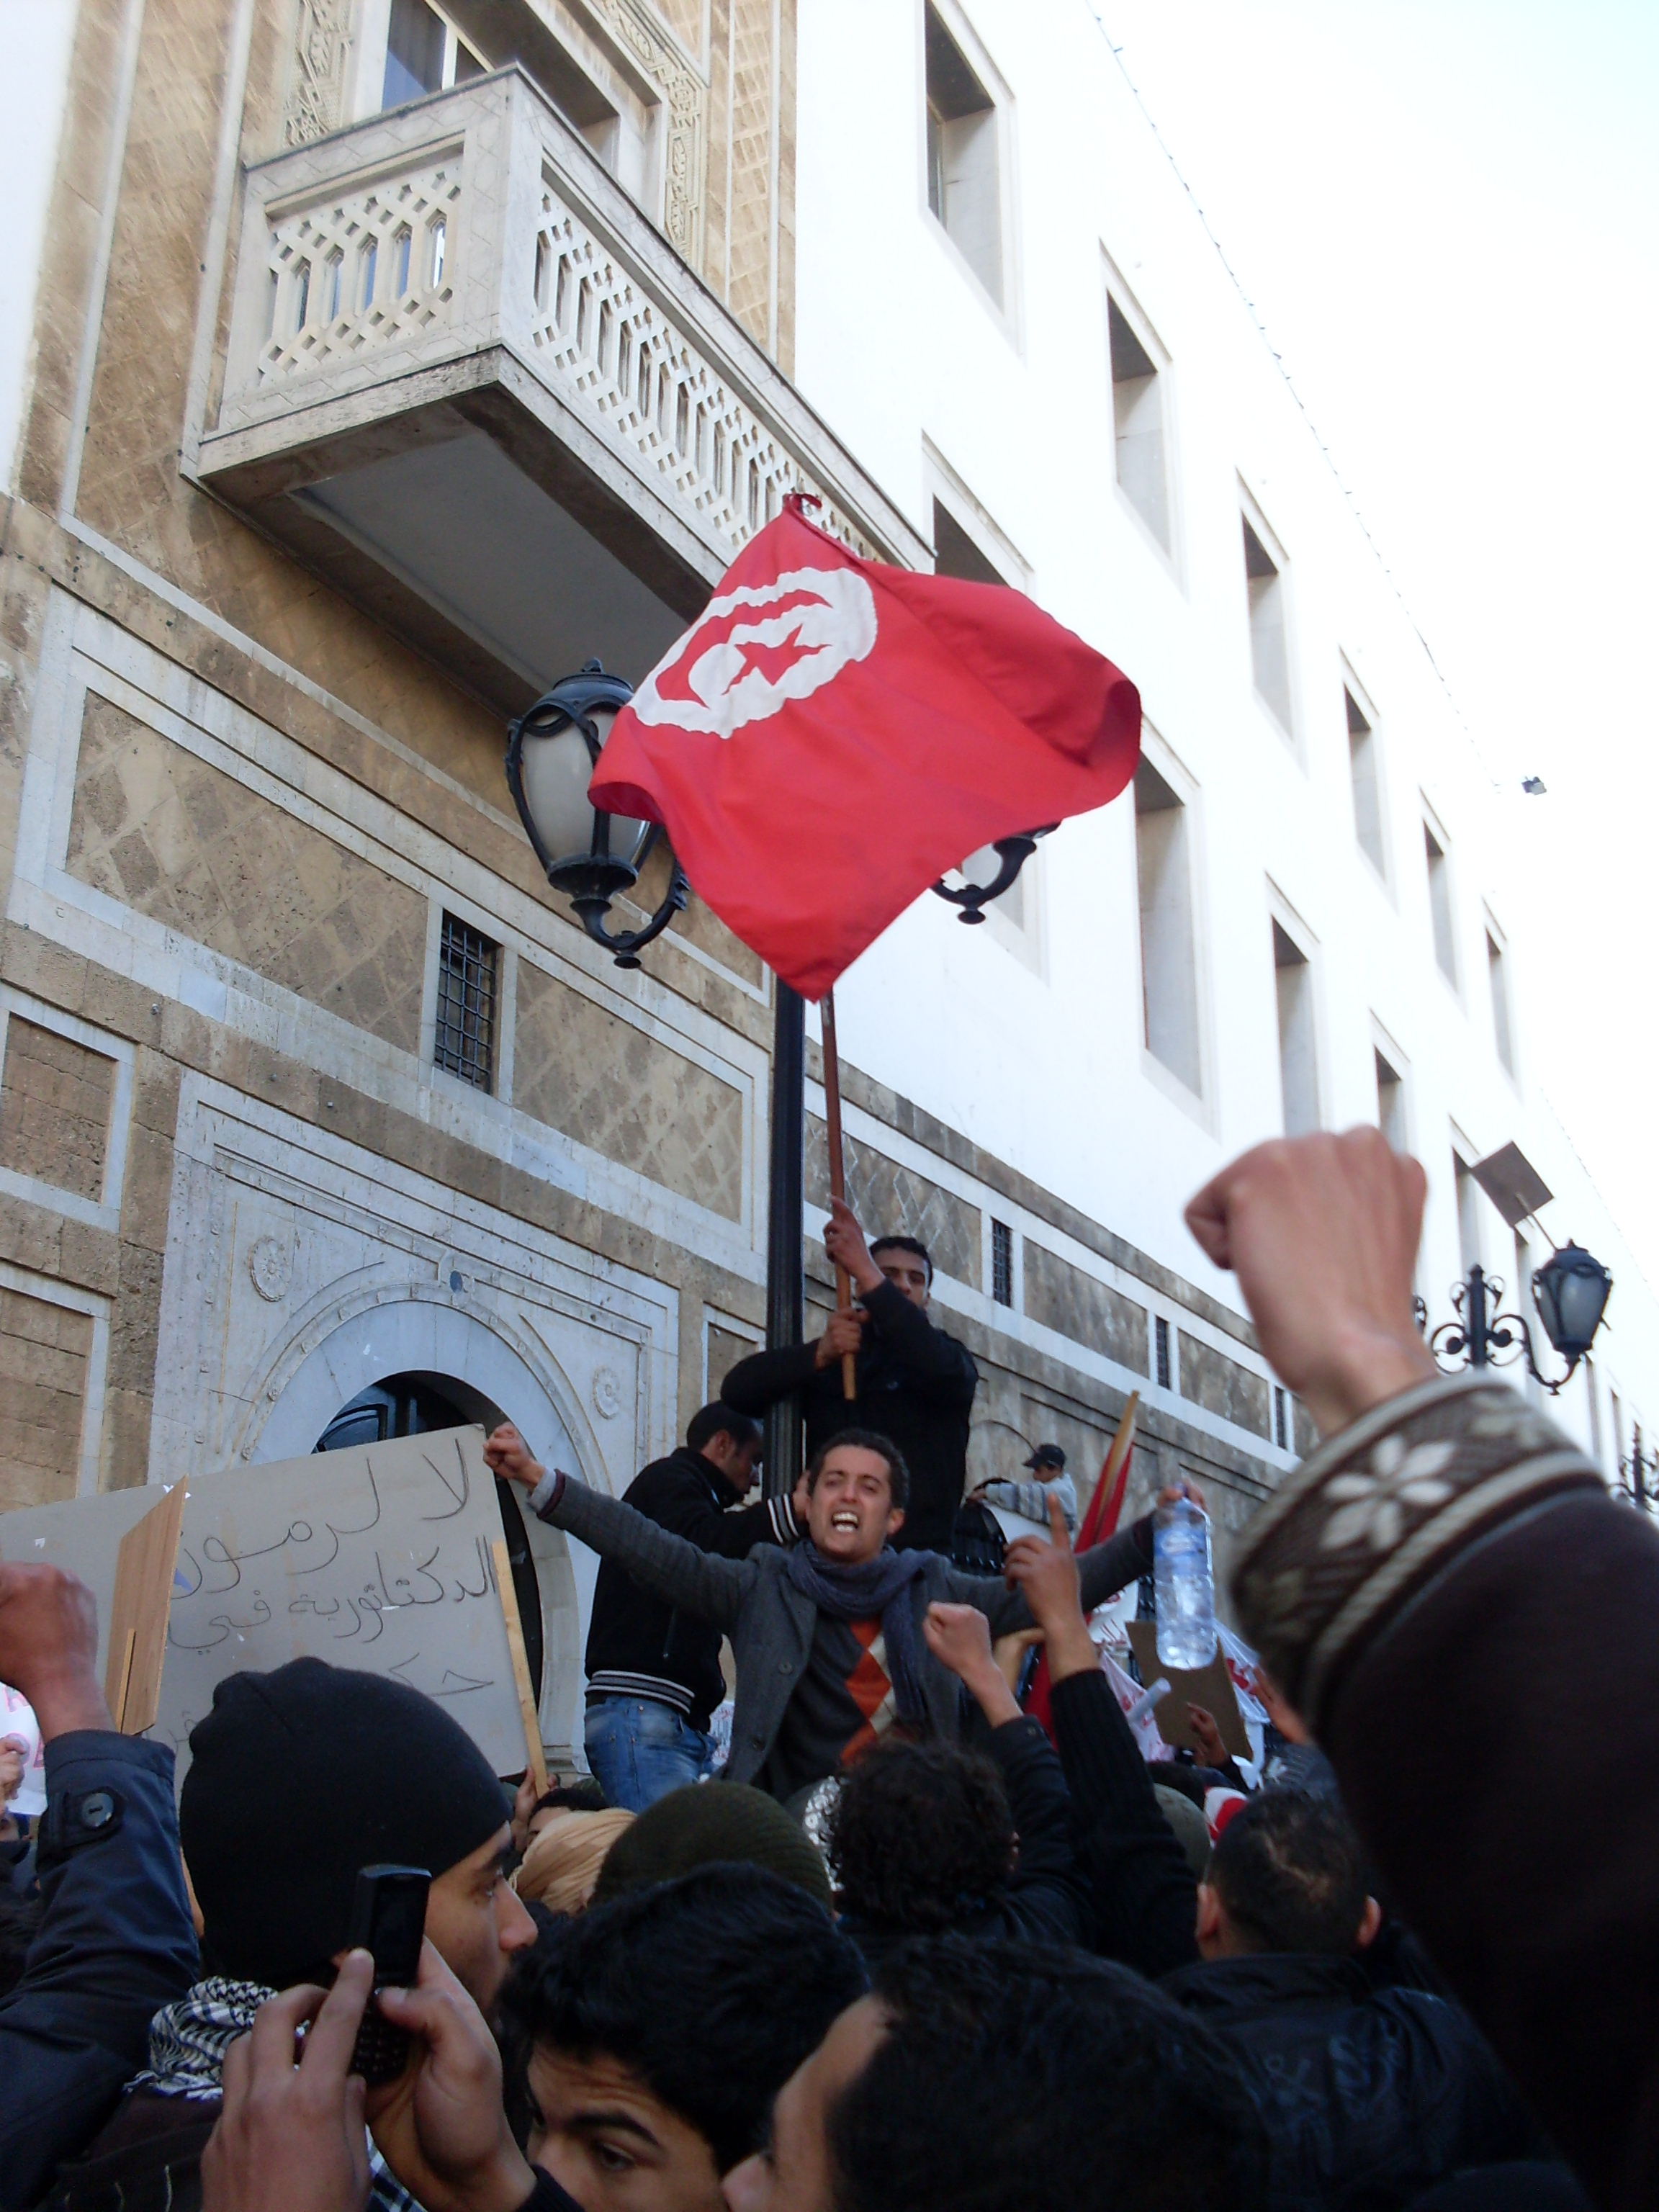 PHOTO: WIKIPEDIA/RAIS67  Labor unions and youth played a large role in the revolution in Tunisia, which led to their President's departure in January. This call to action inspired similar uprisings throughout the Middle East and North Africa.